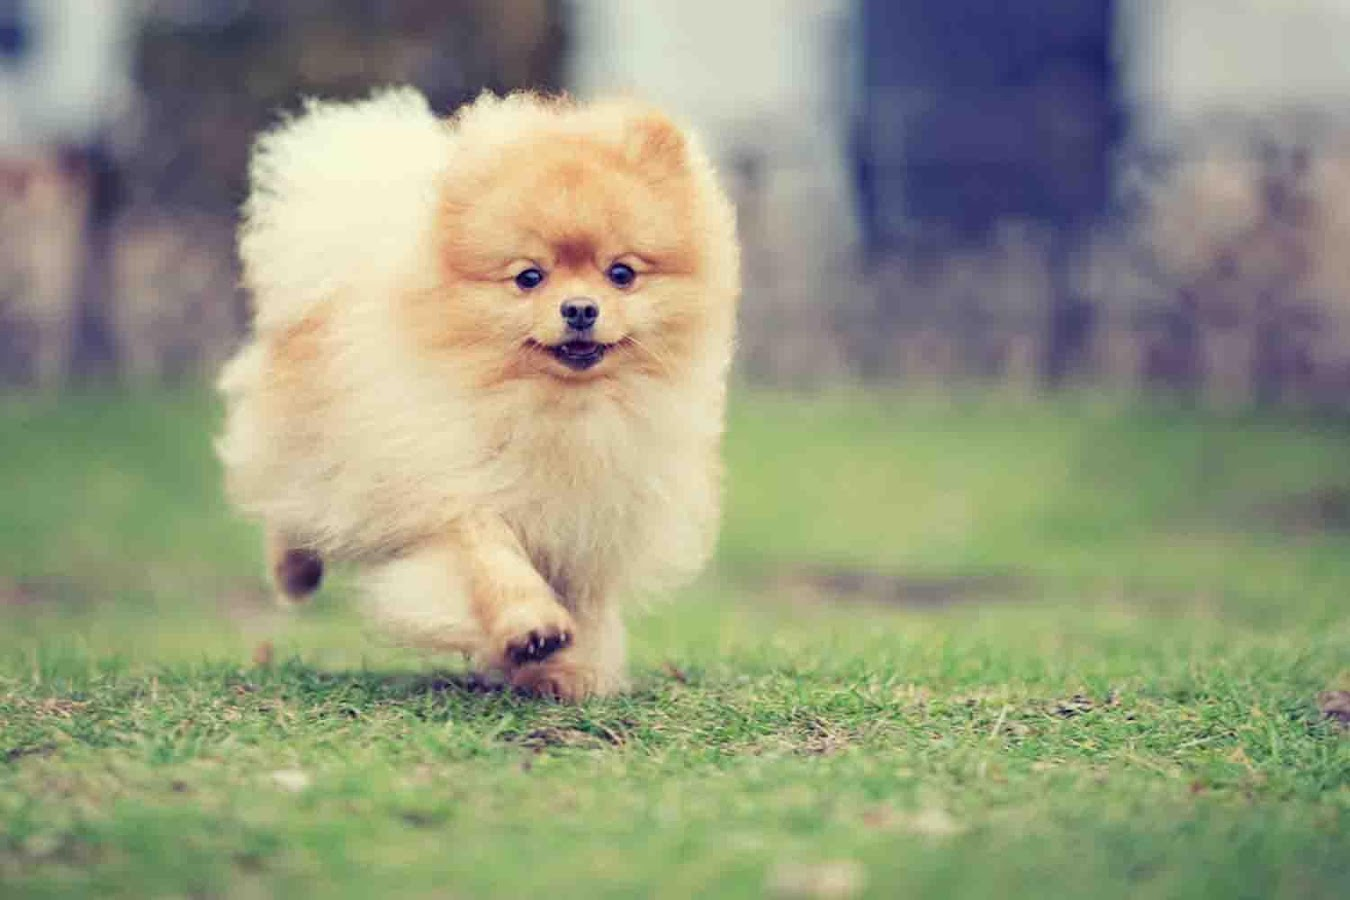 Dog Wallpaper pomeranian dog wallpaper - android apps on google play